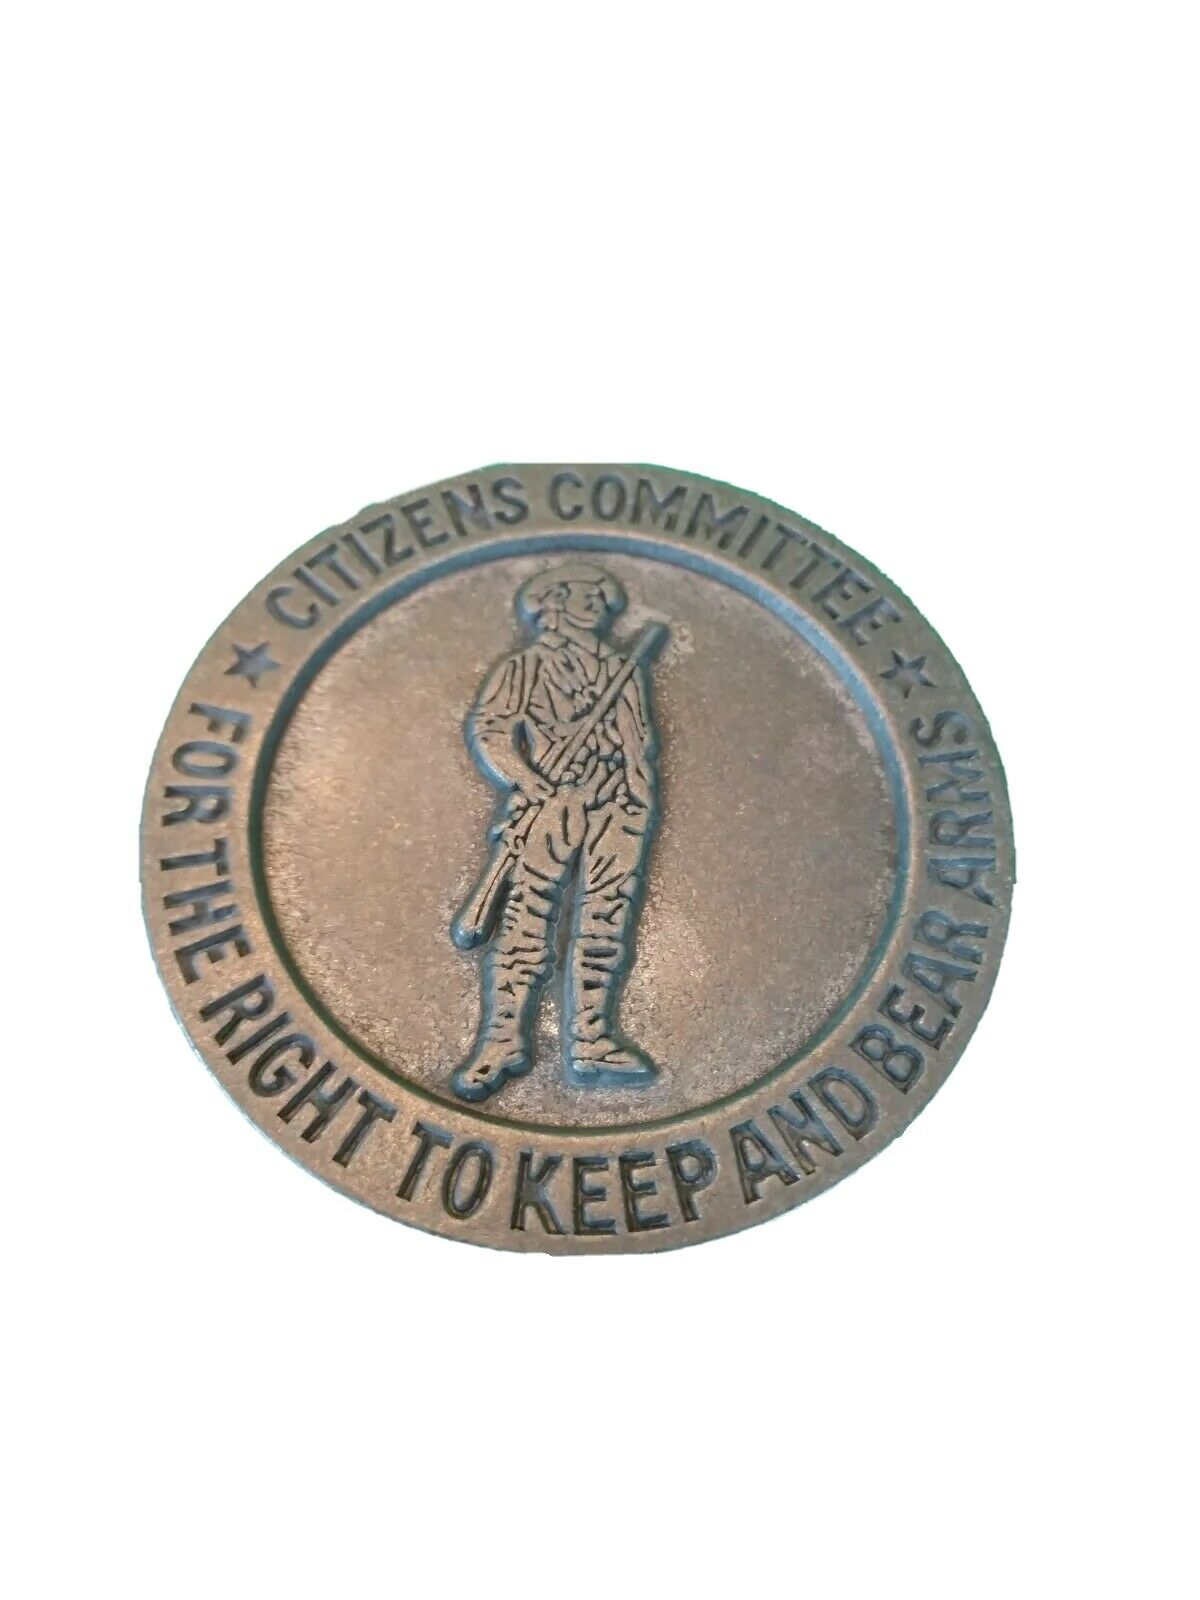 SECOND 2nd AMENDMENT BELT BUCKLE CITIZENS COMMITTEE RIGHT TO KEEP AND BEAR ARMS